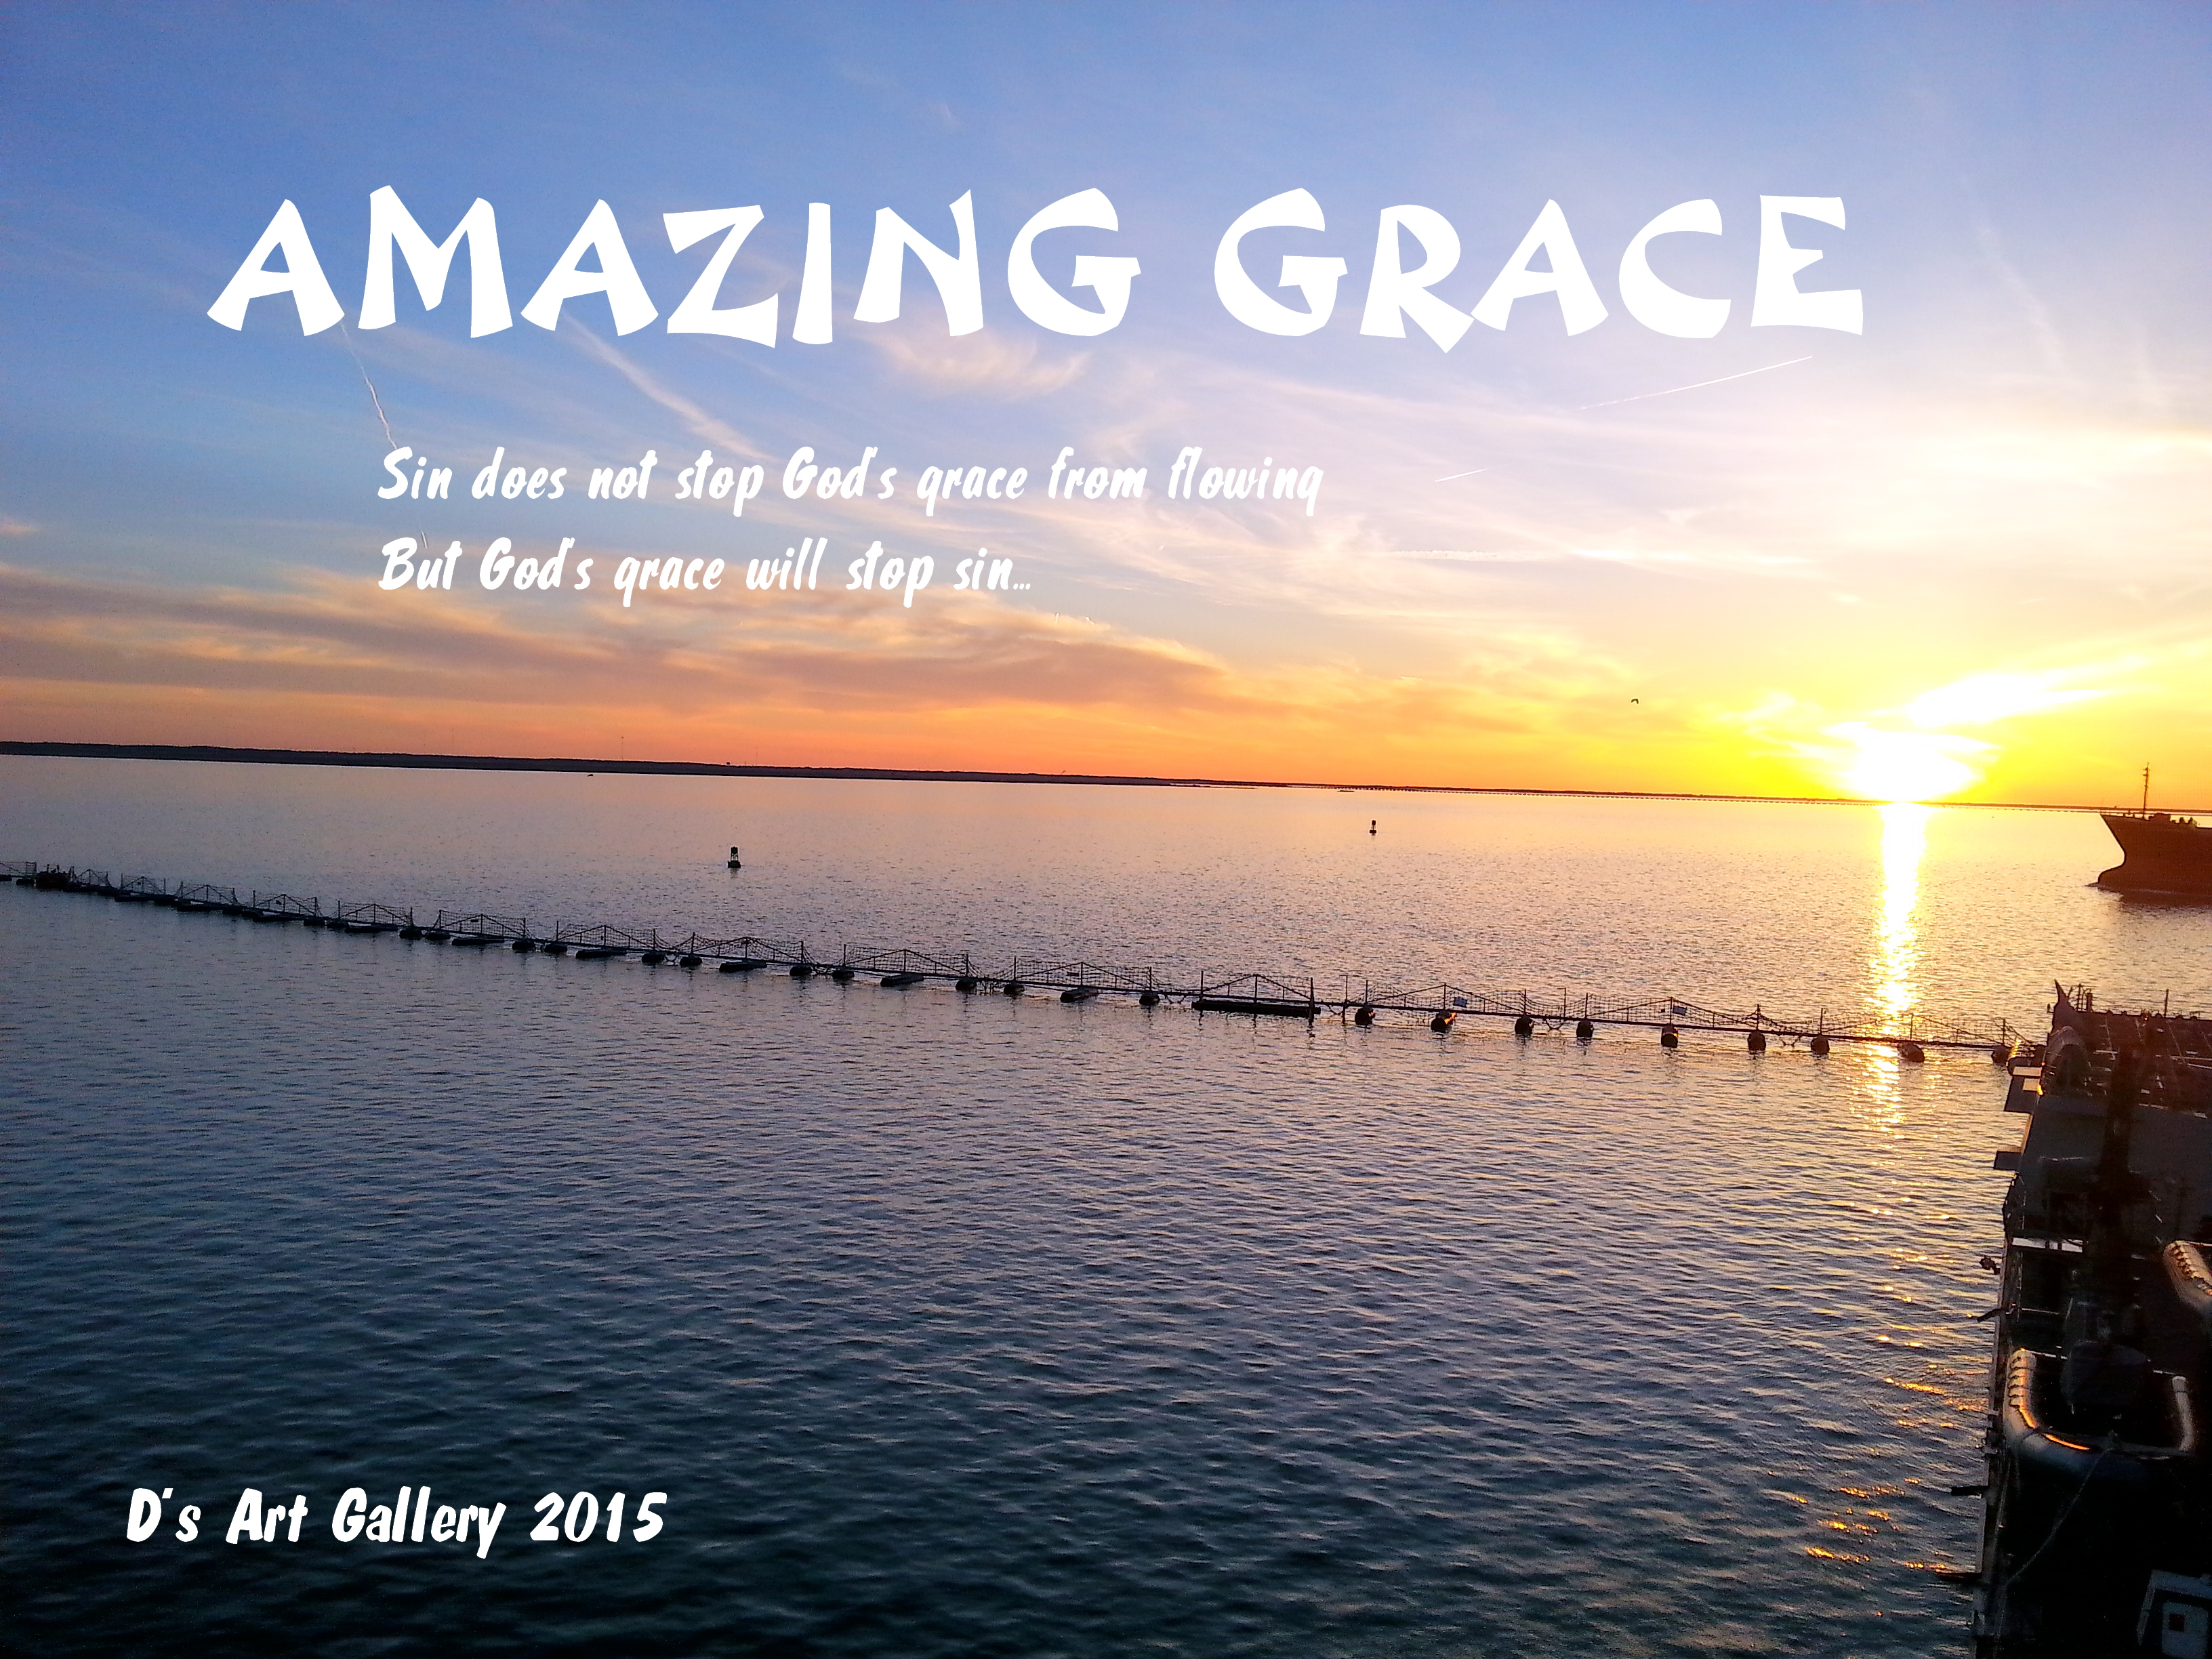 EXPERIENCE THE POWER OF GOD'S AMAZING GRACE (Photo by Pastor Davis)